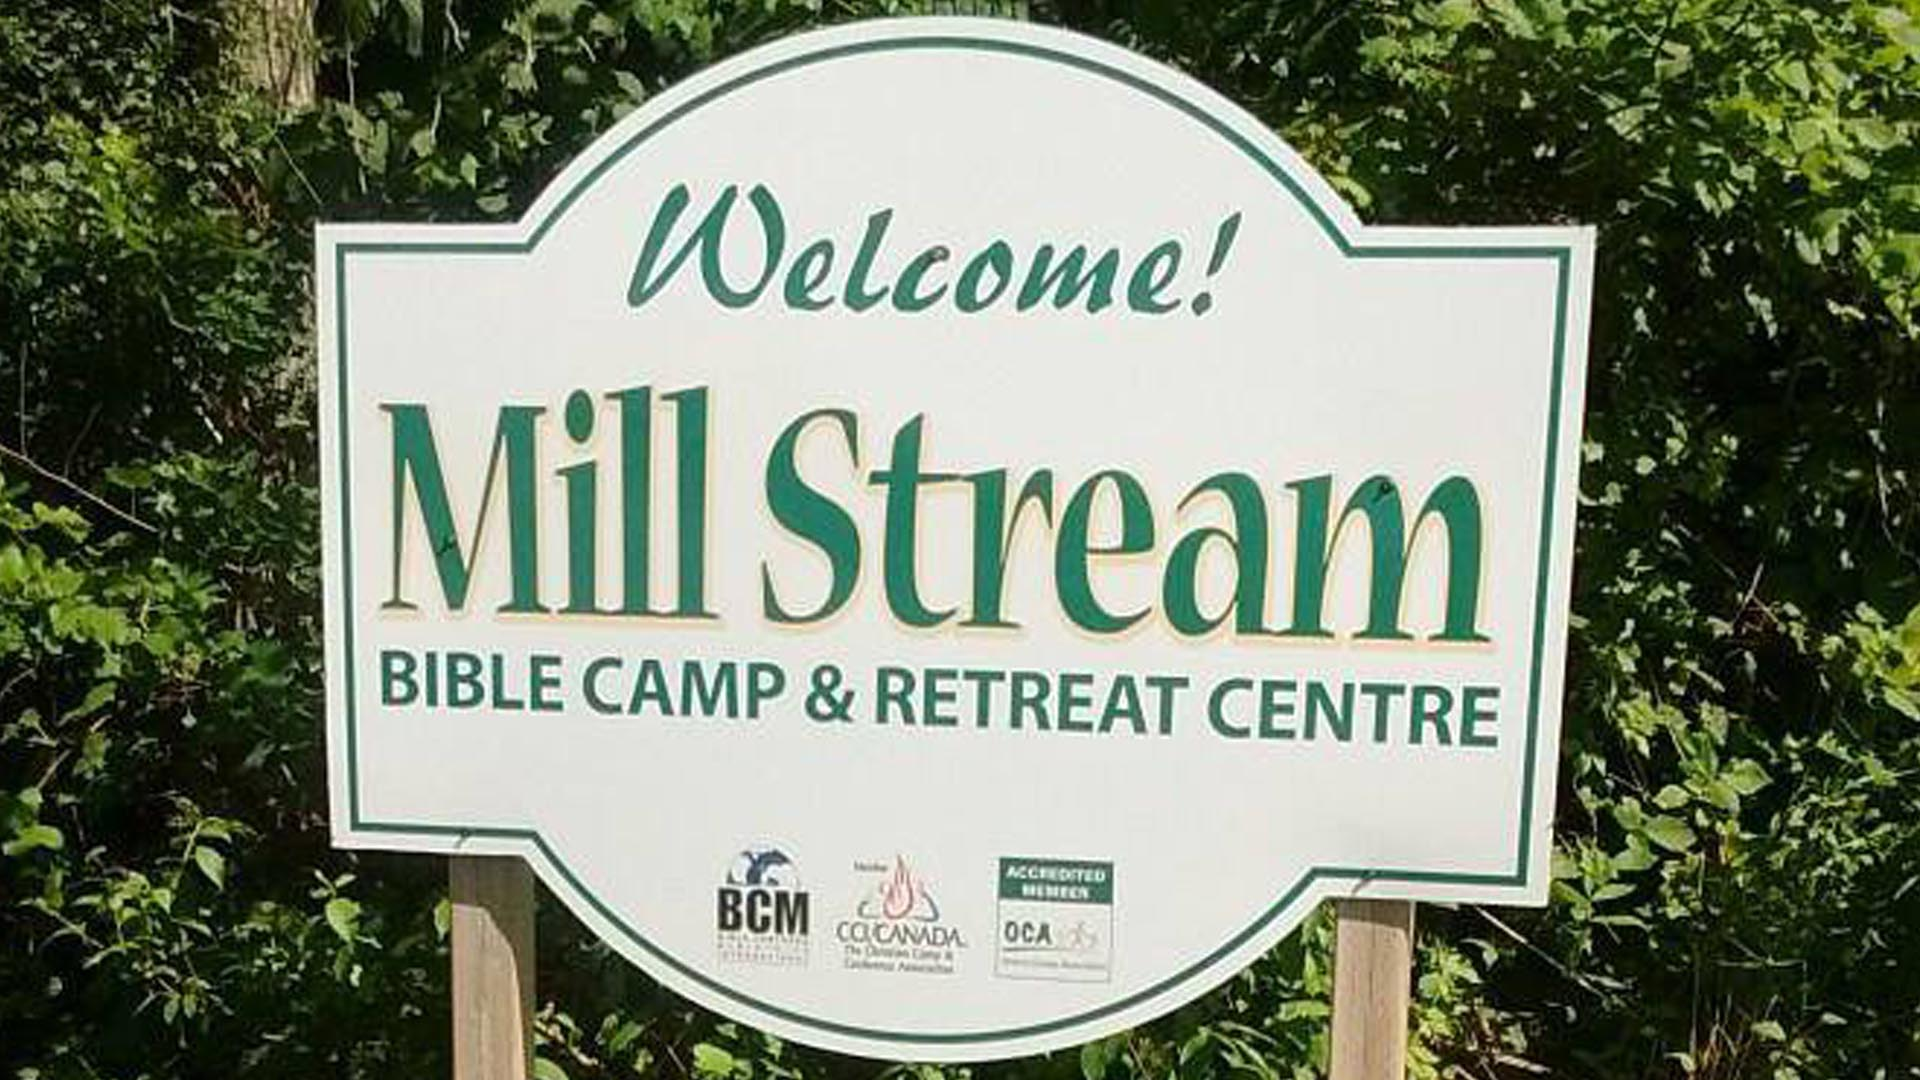 Mill Stream Bible Camp wins in court: Feds unfairly denied funds based on camp's pro-life stance